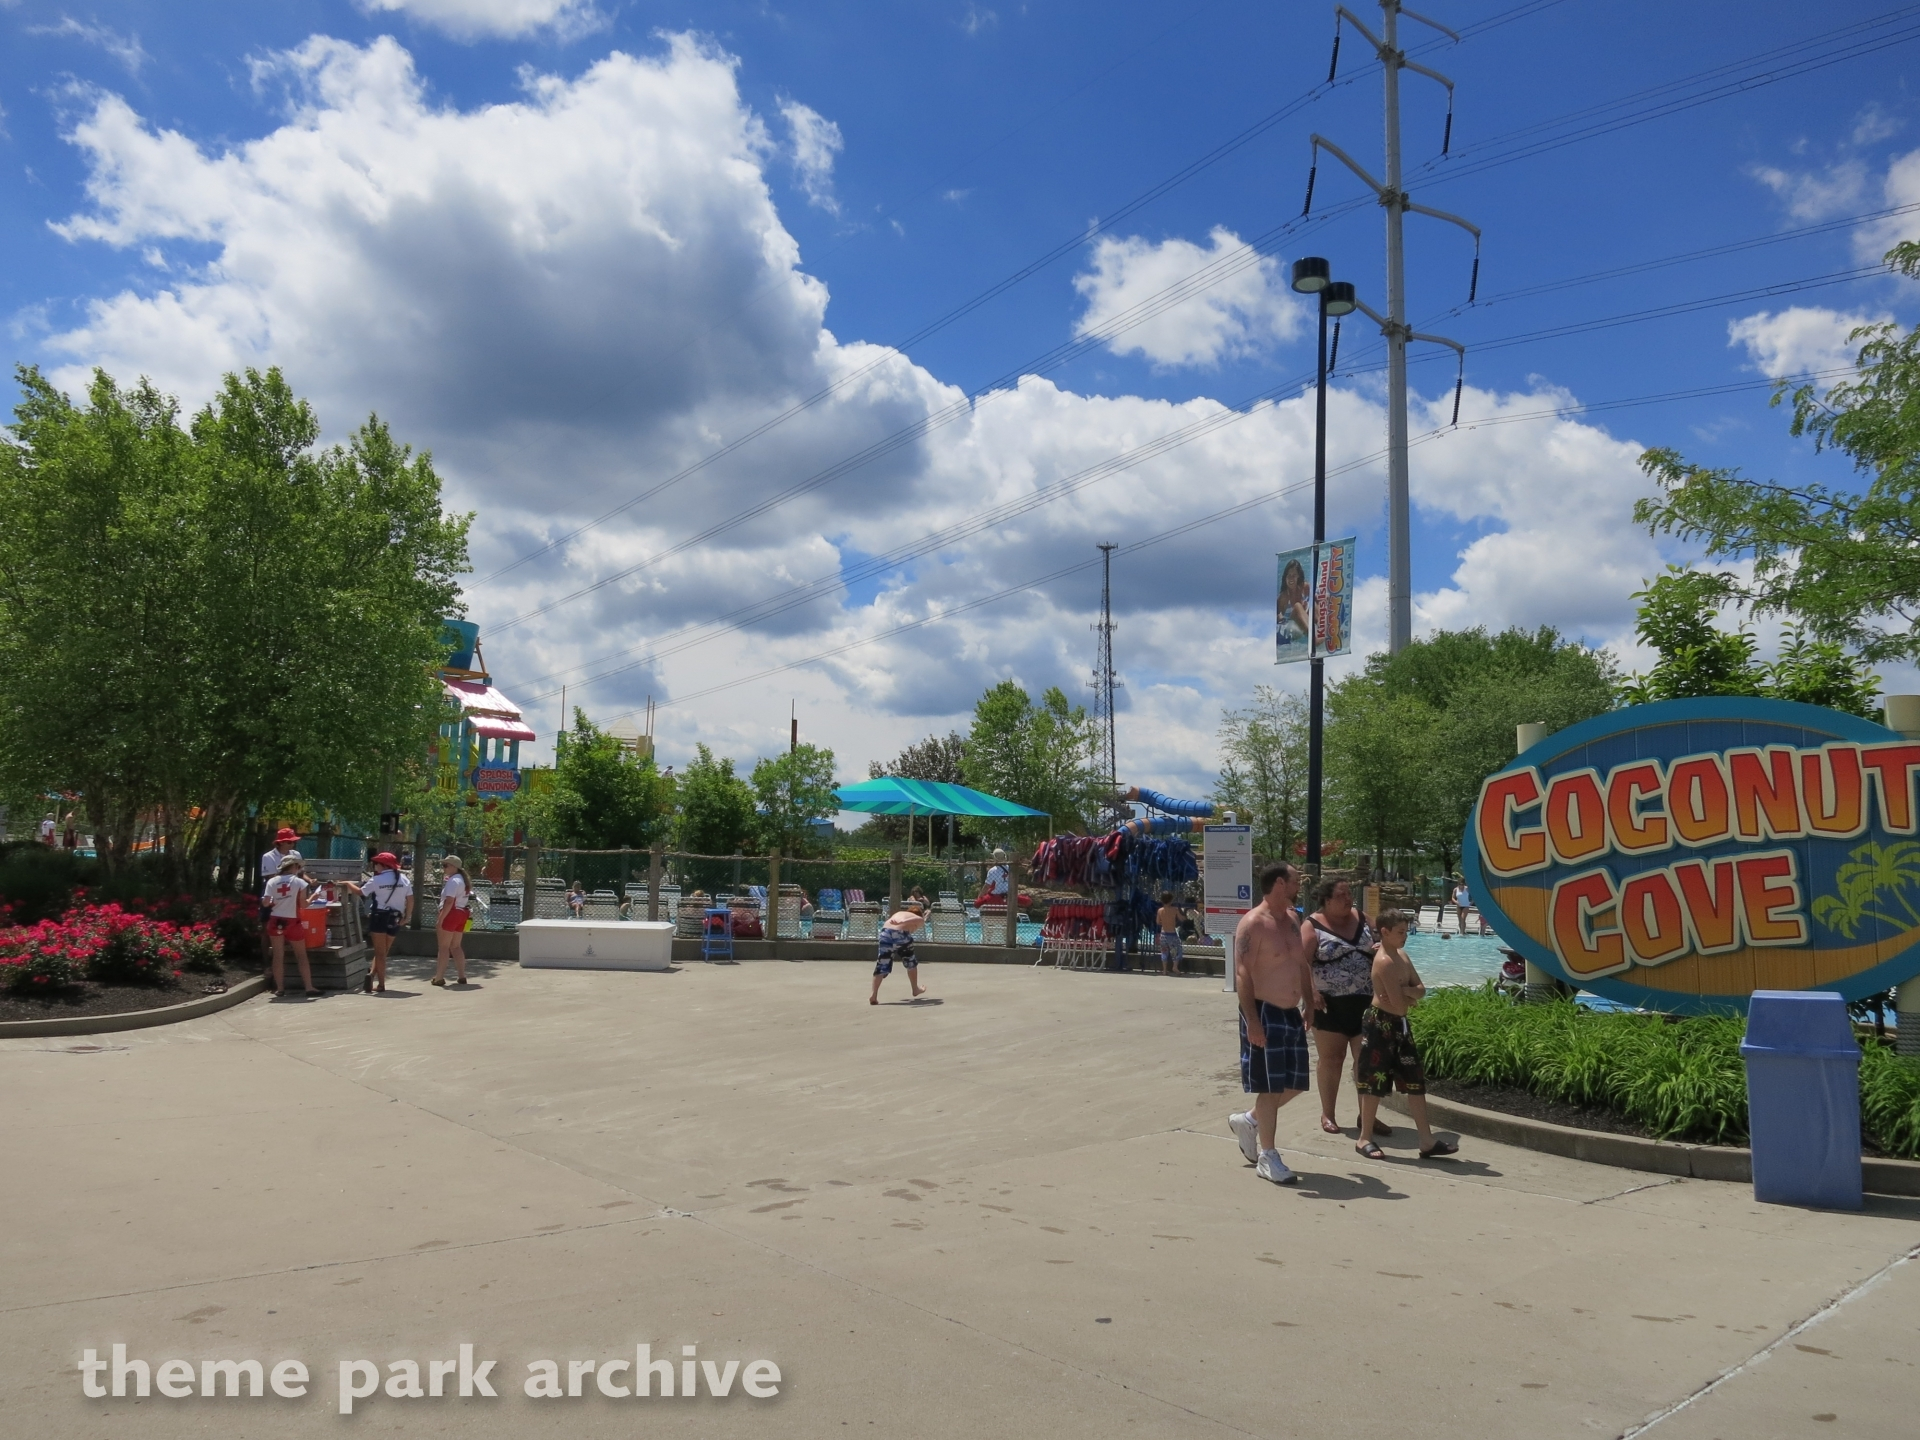 Coconut Cove at Kings Island